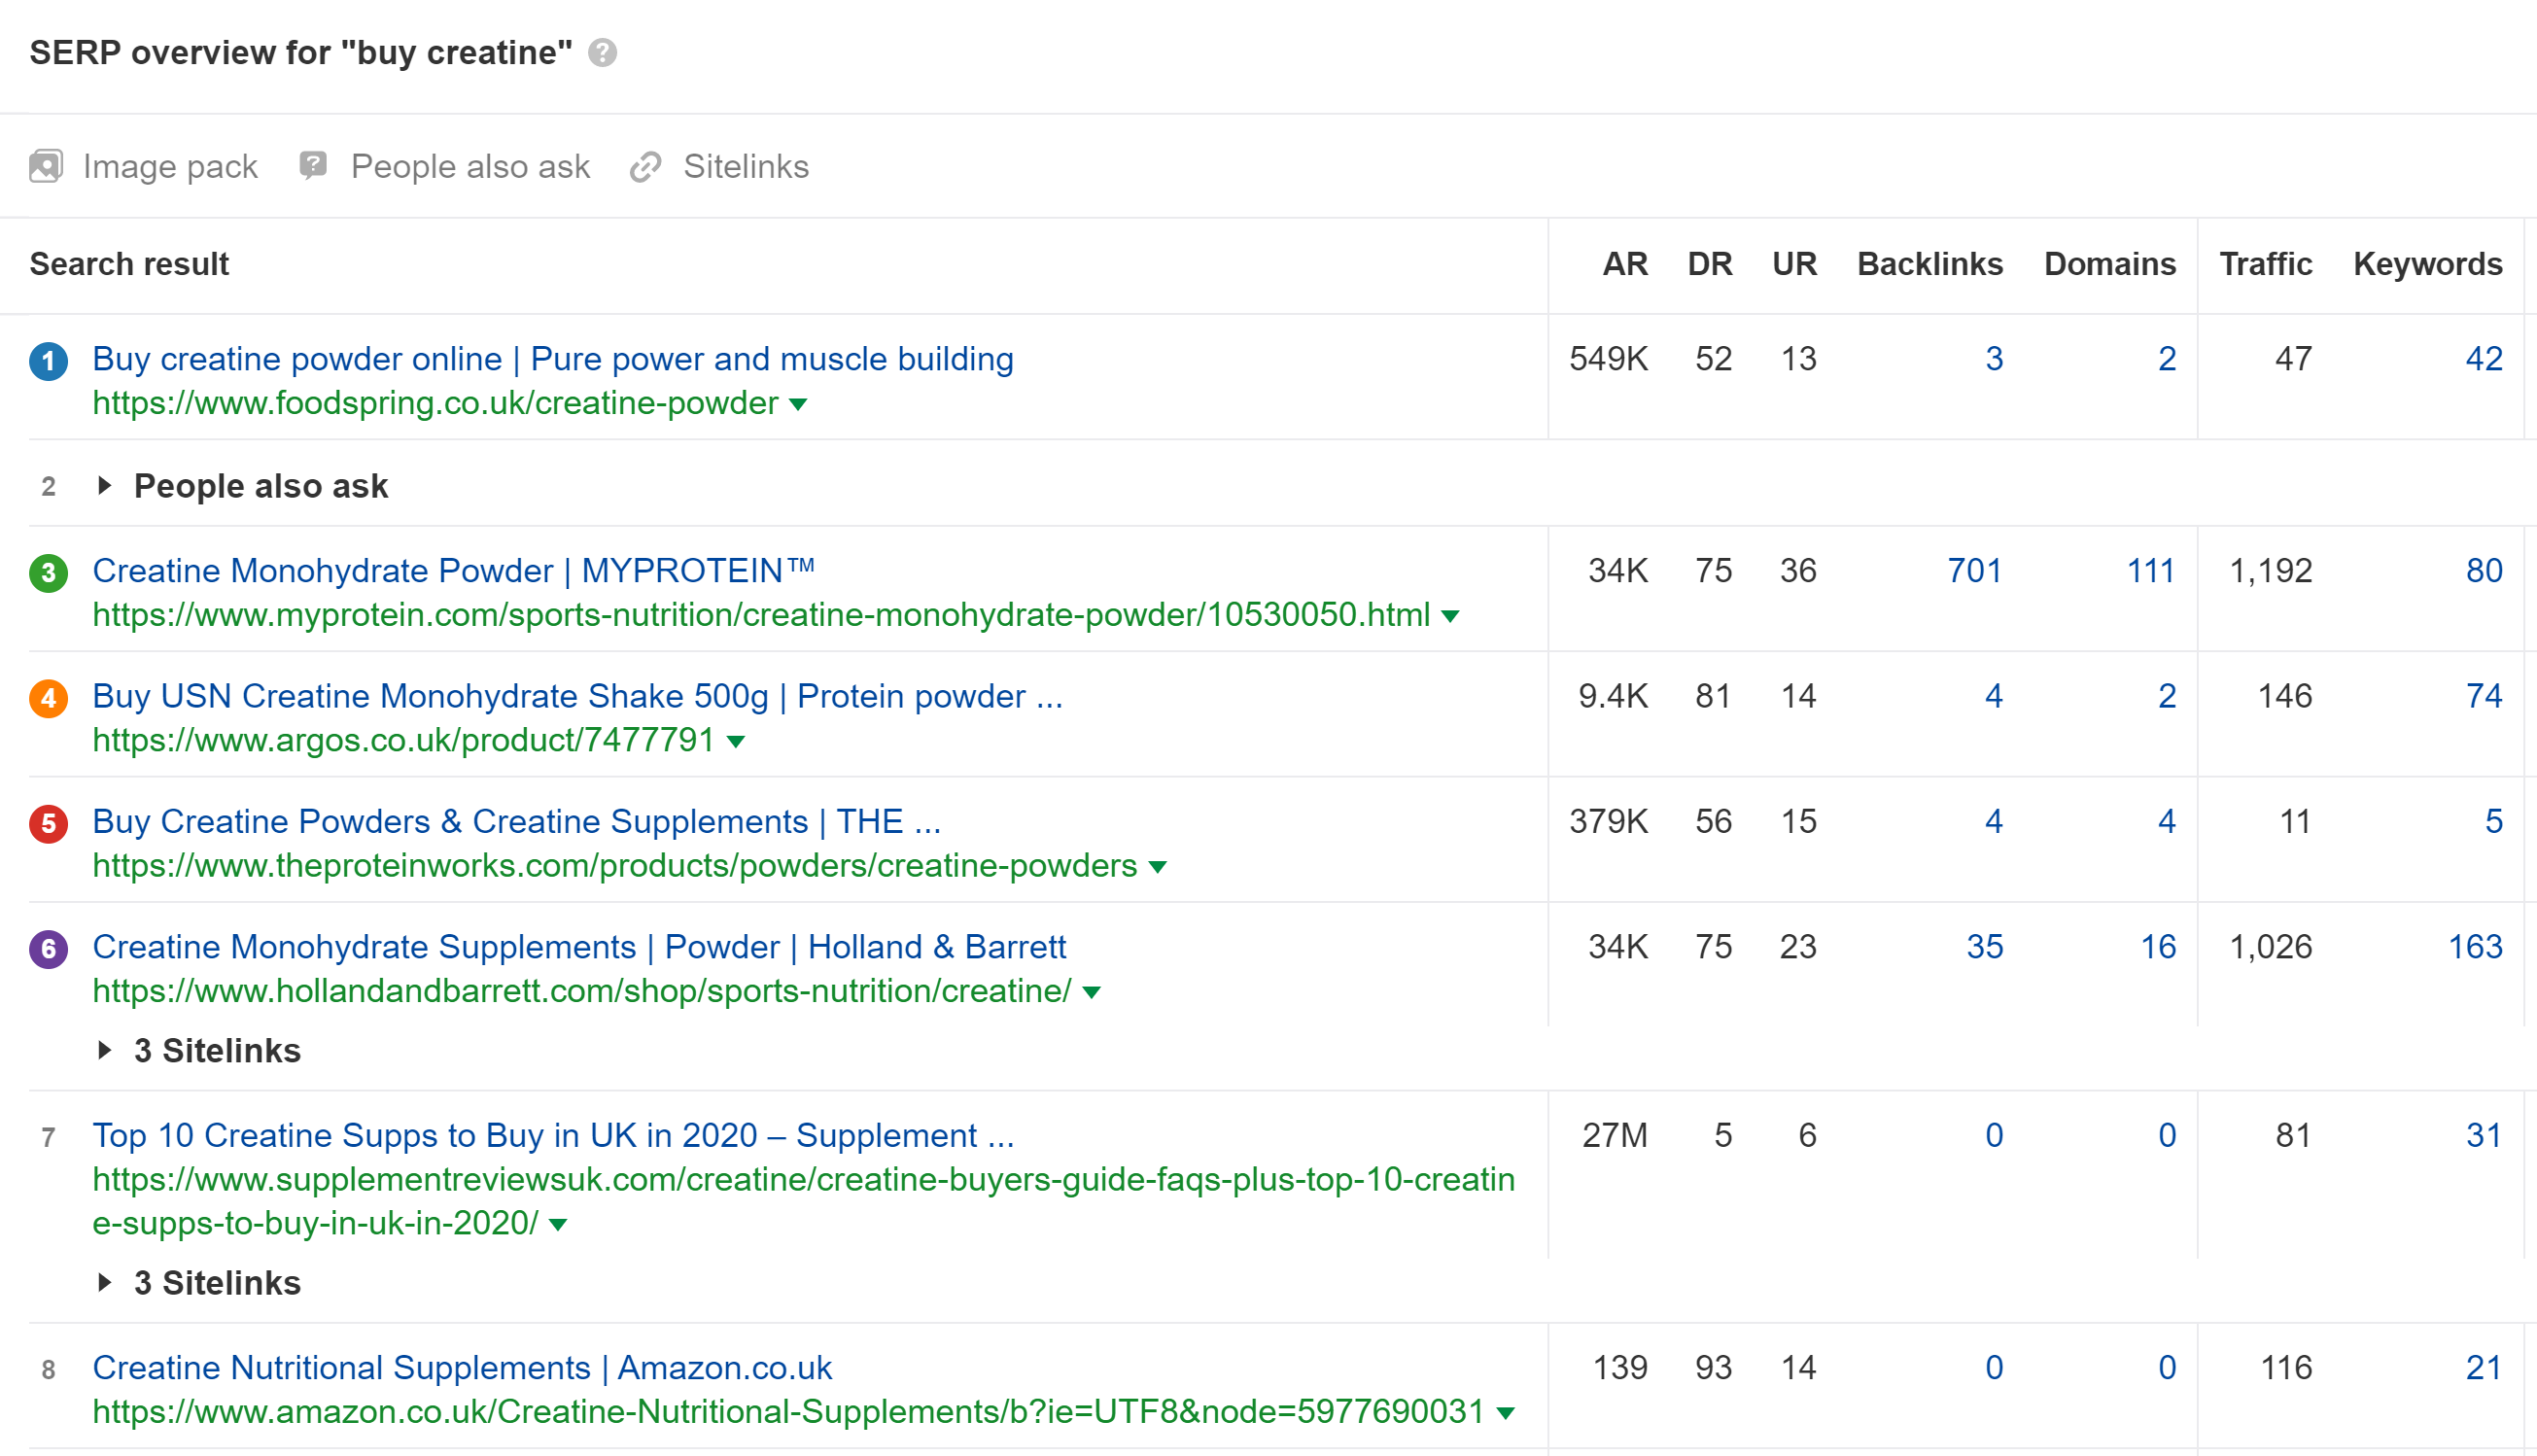 SERP overview example